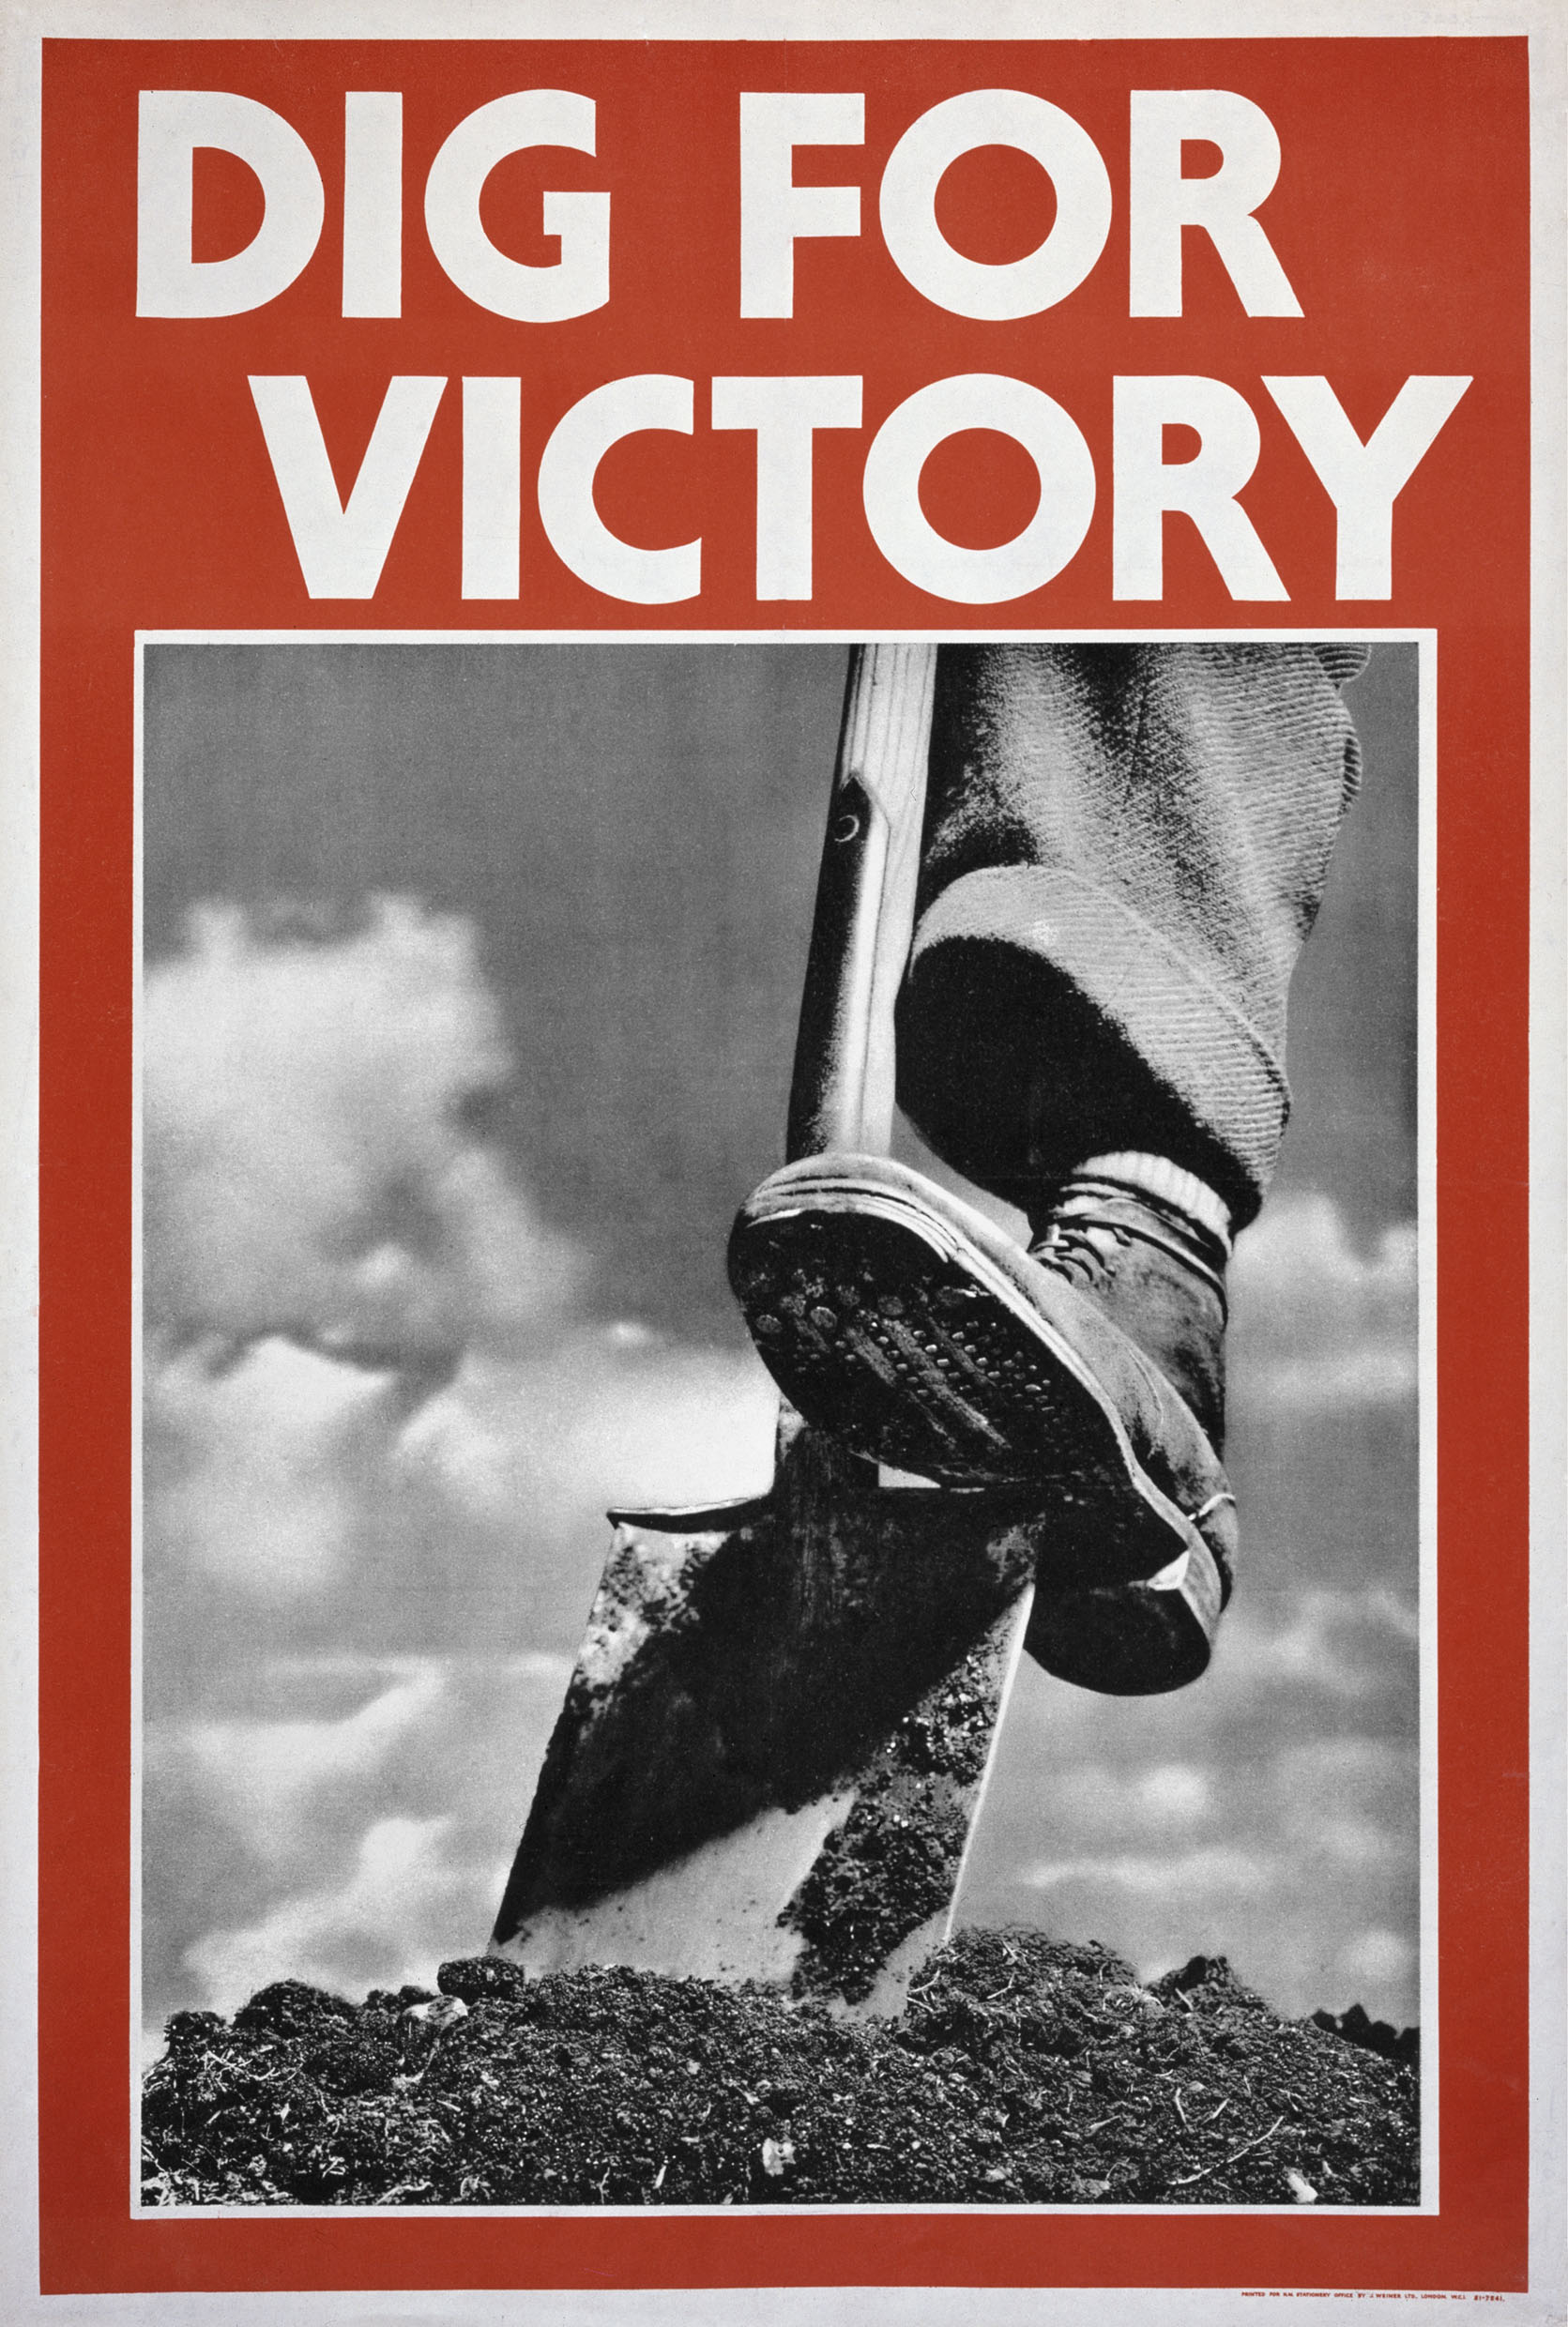 Dig For Victory, 1942, IWM PST 0059